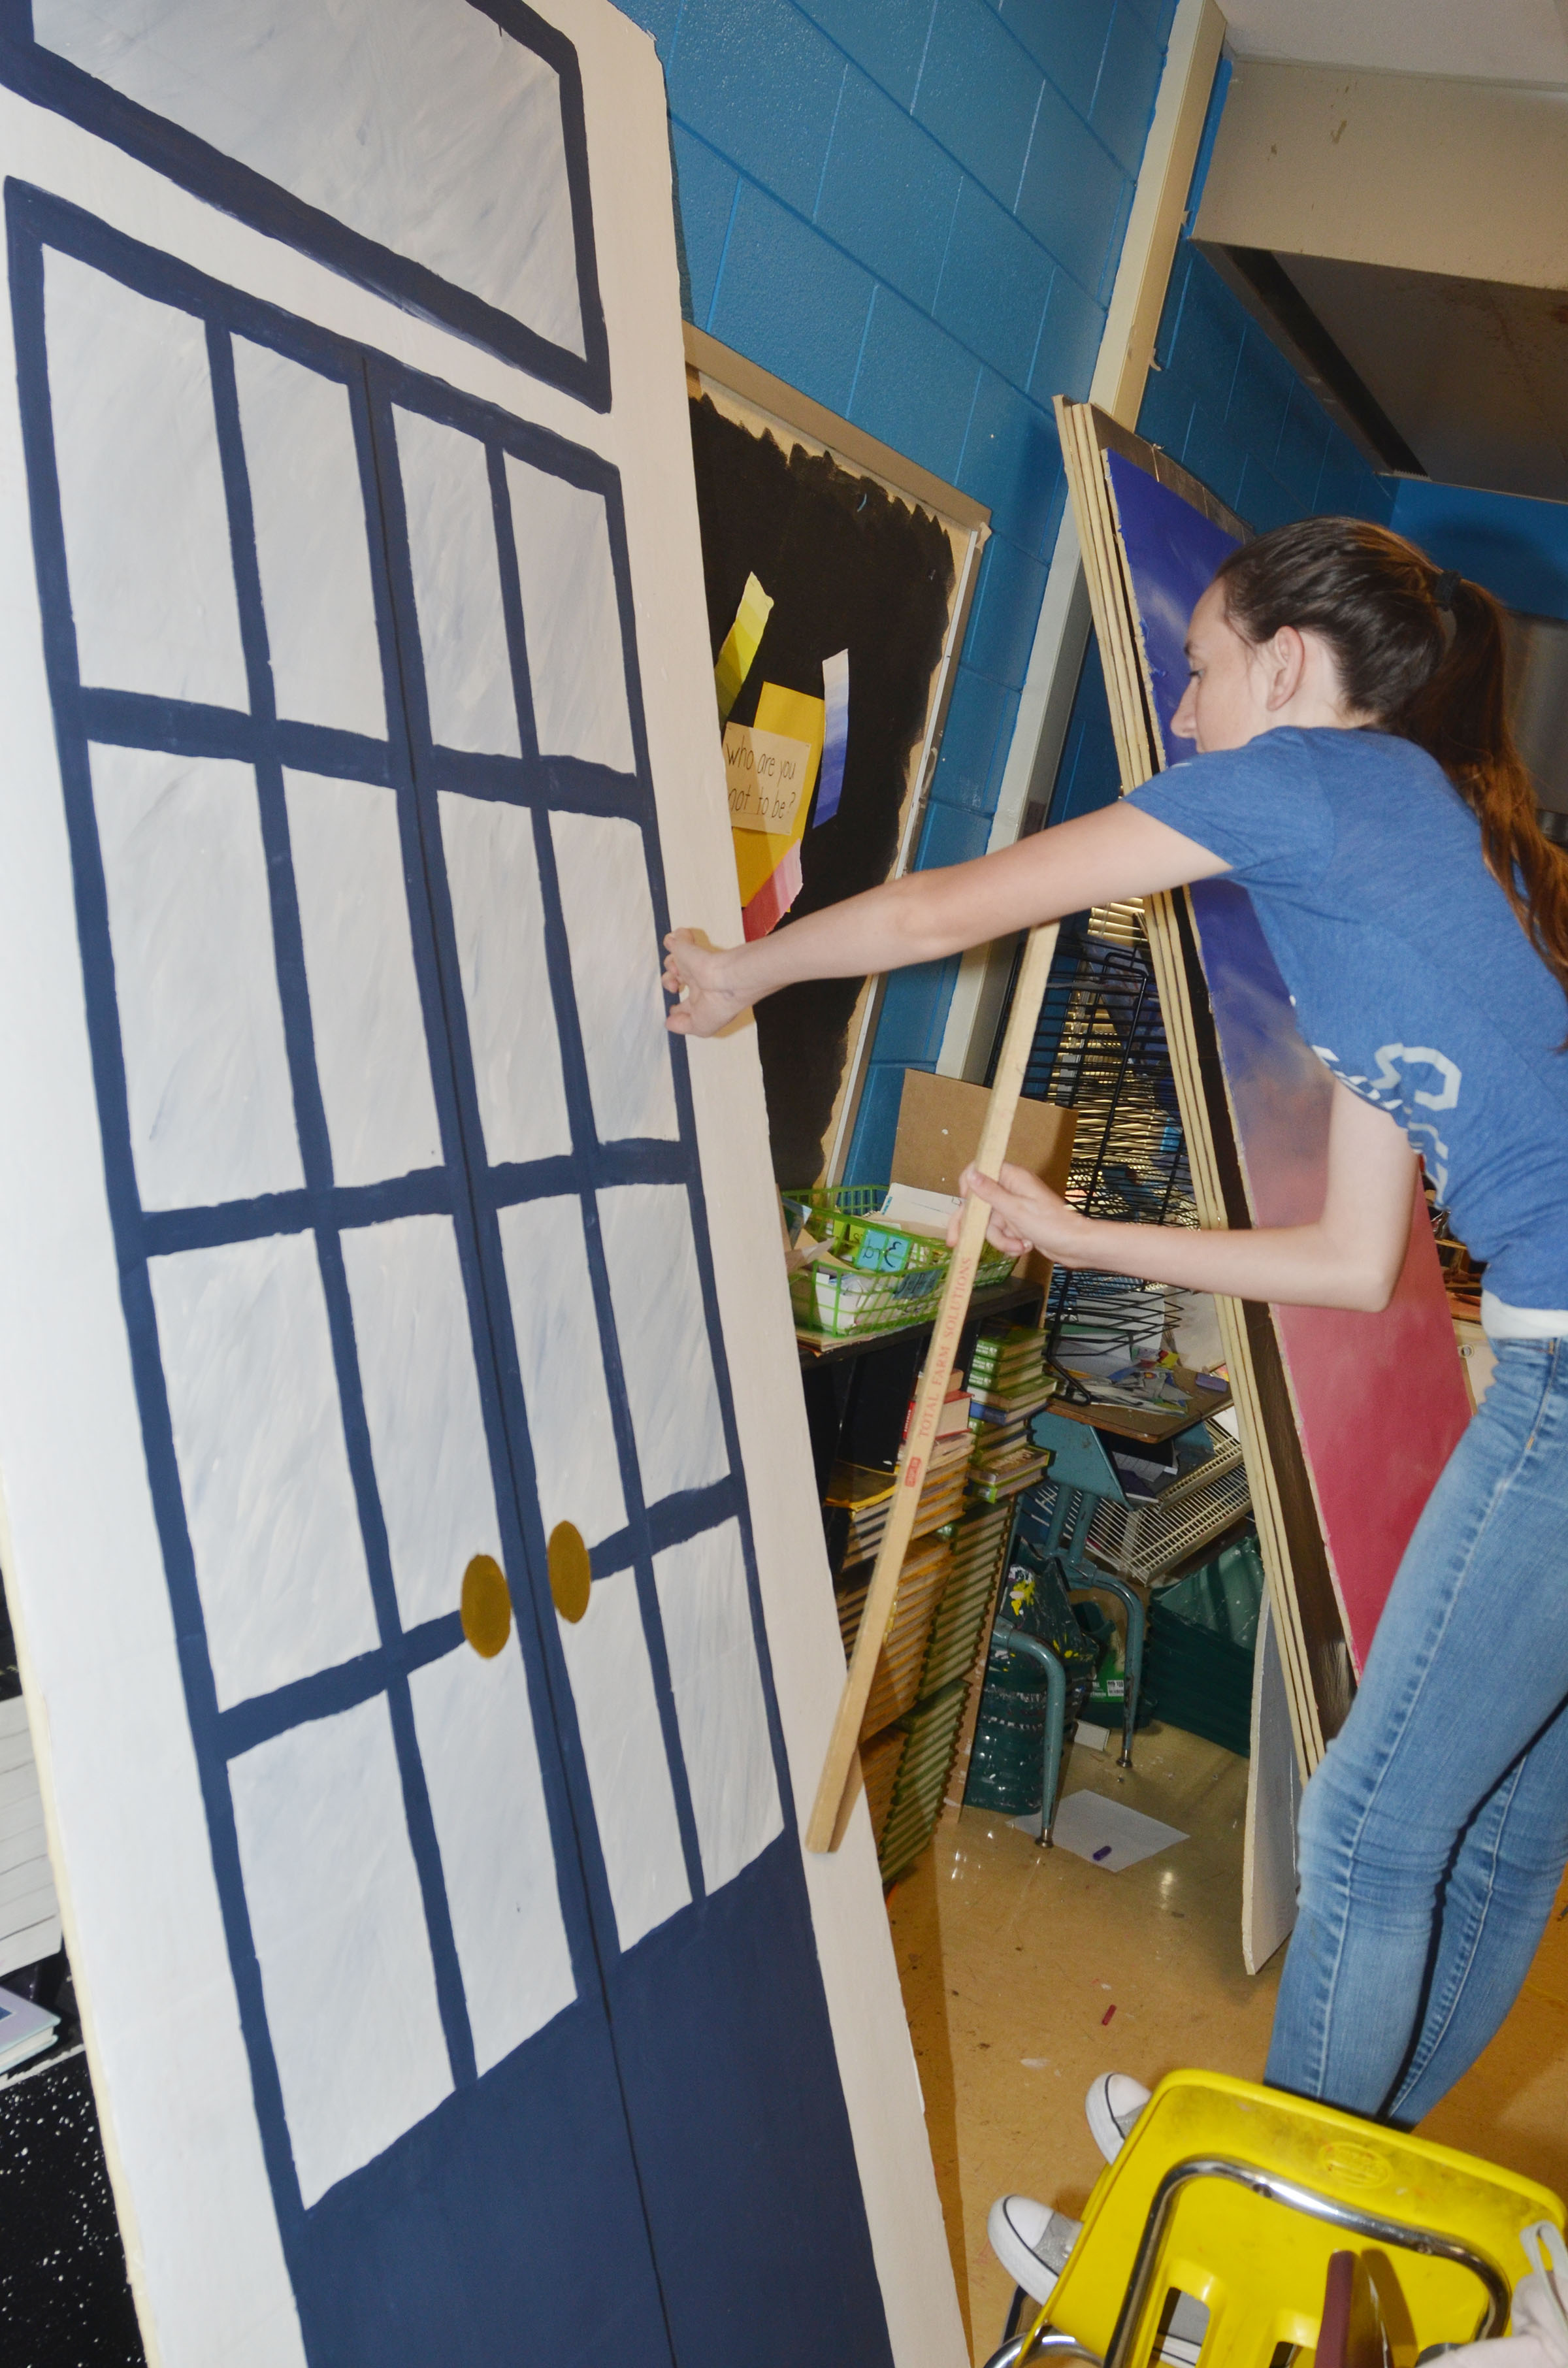 CHS freshman Zoe McAninch measures a door on this prom prop.